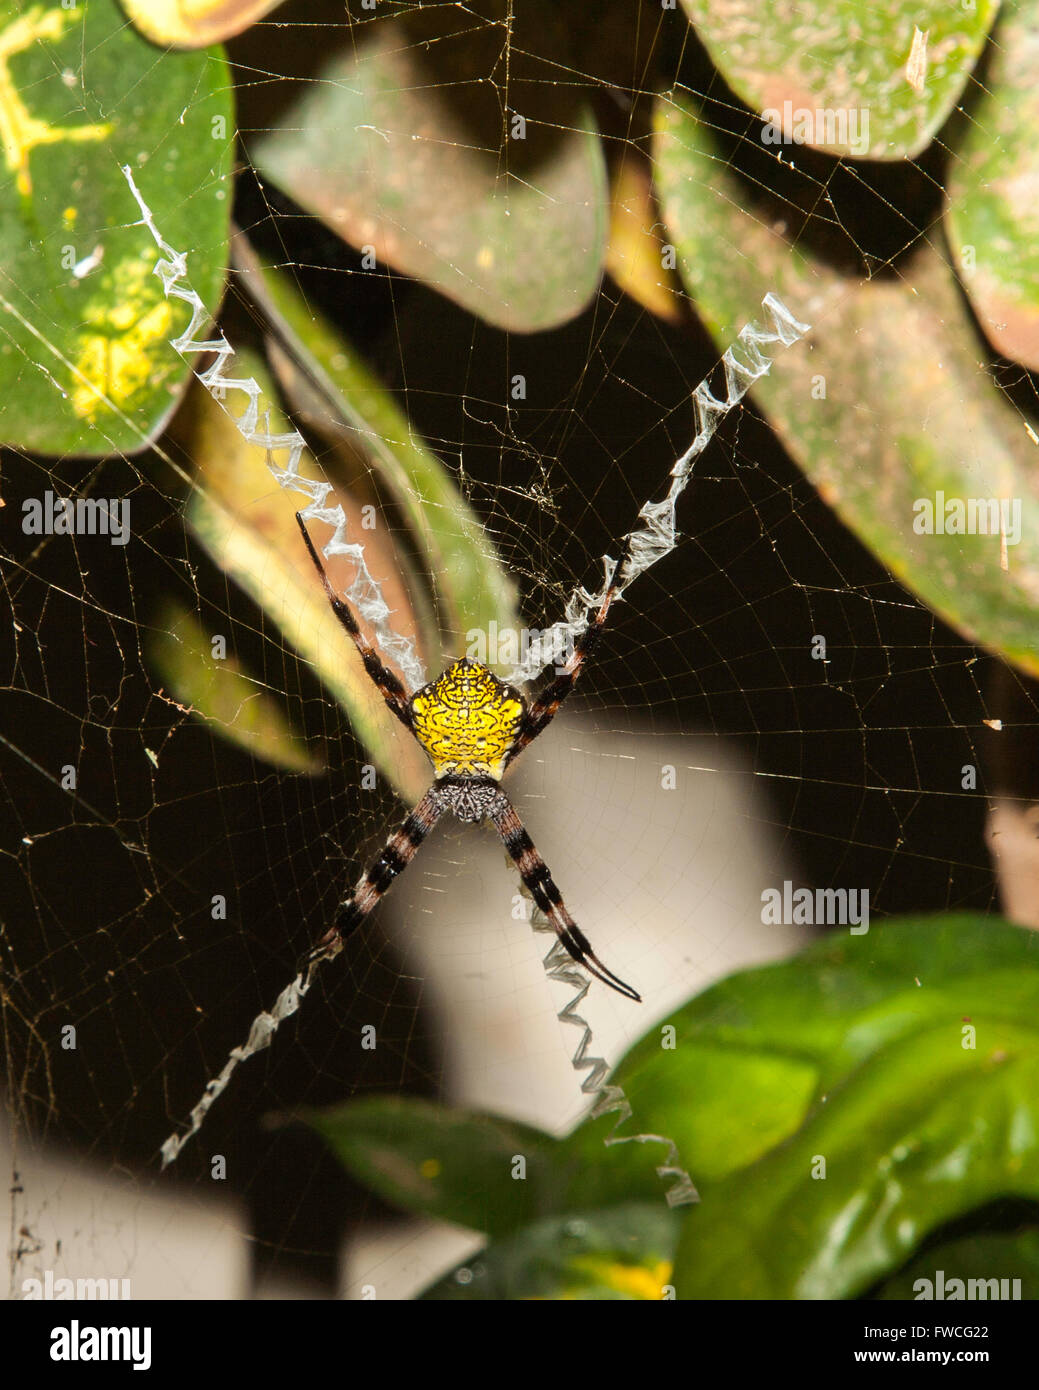 Orb Web Spider in Web - Stock Image